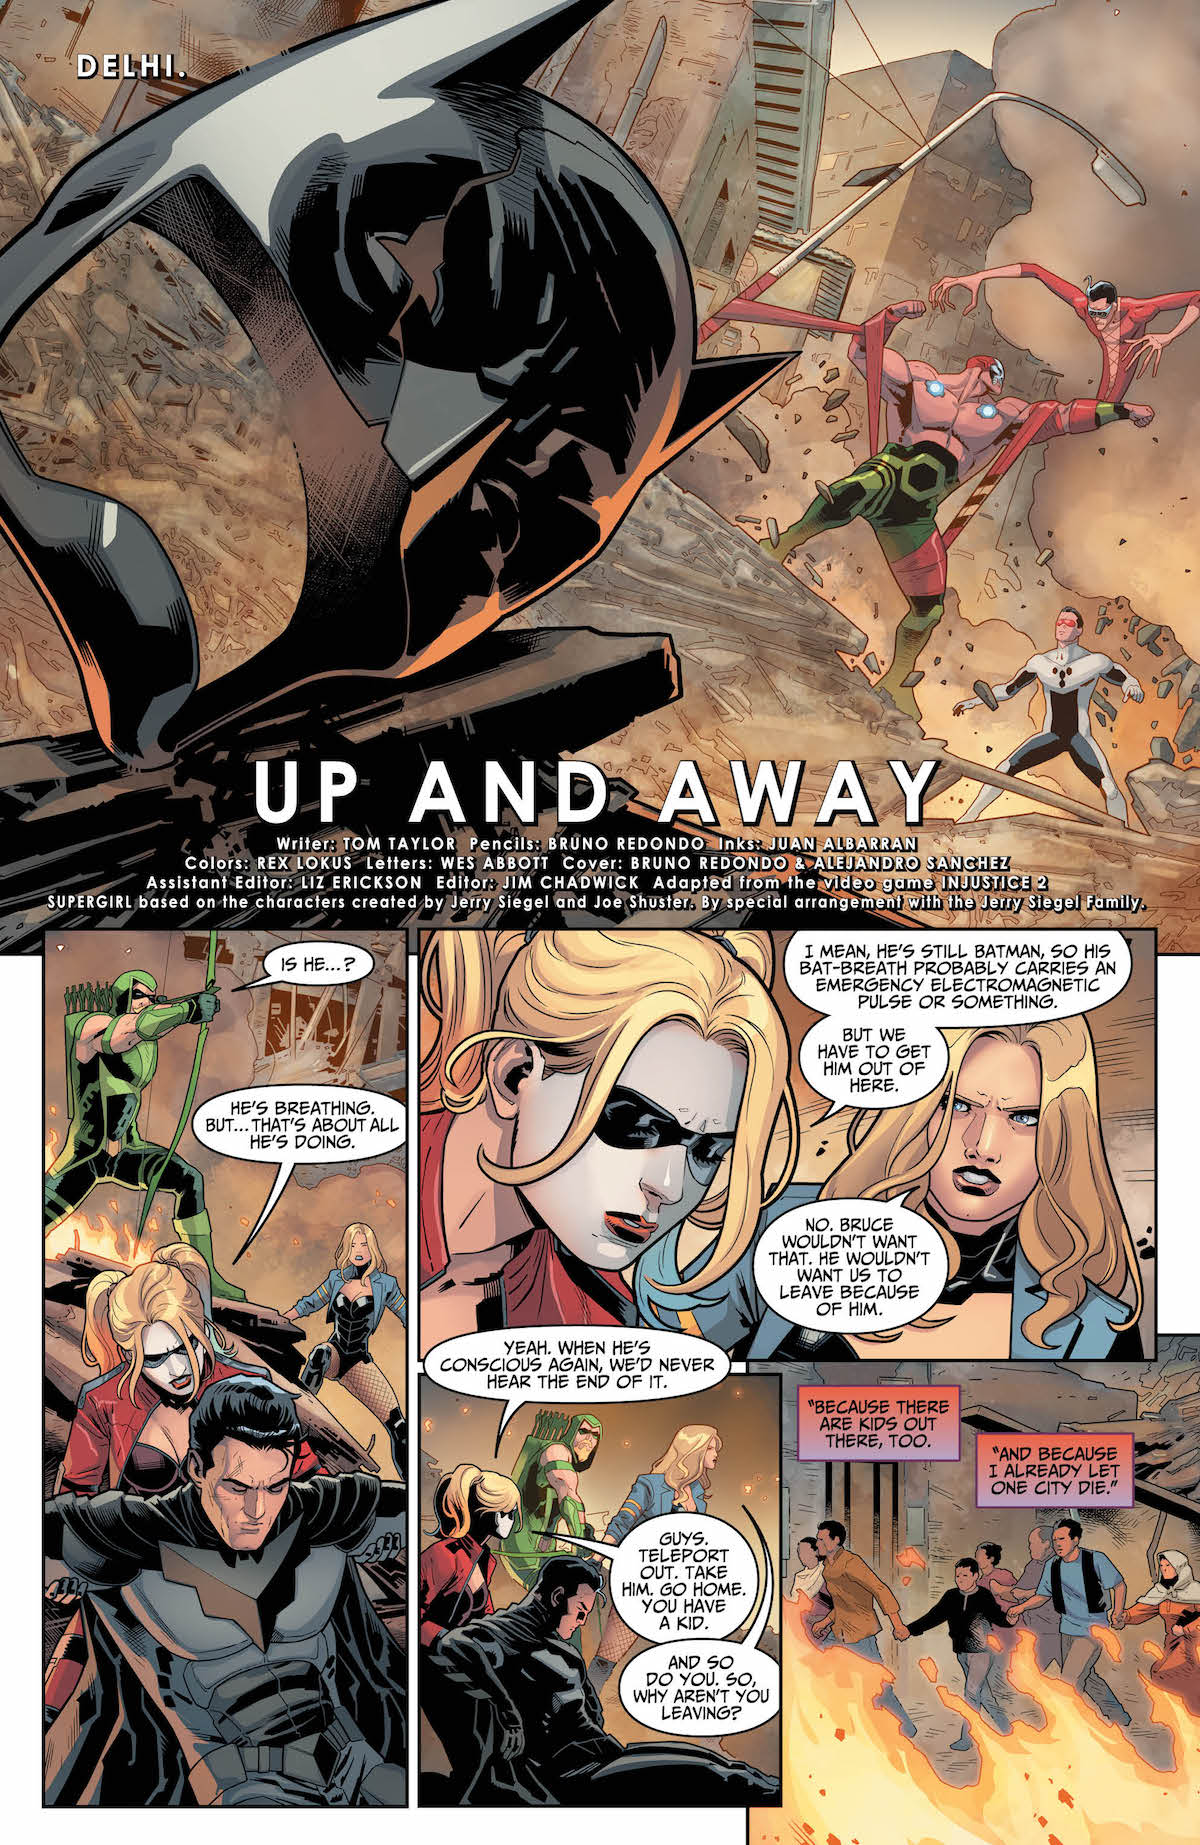 Injustice 2 #24 page 1